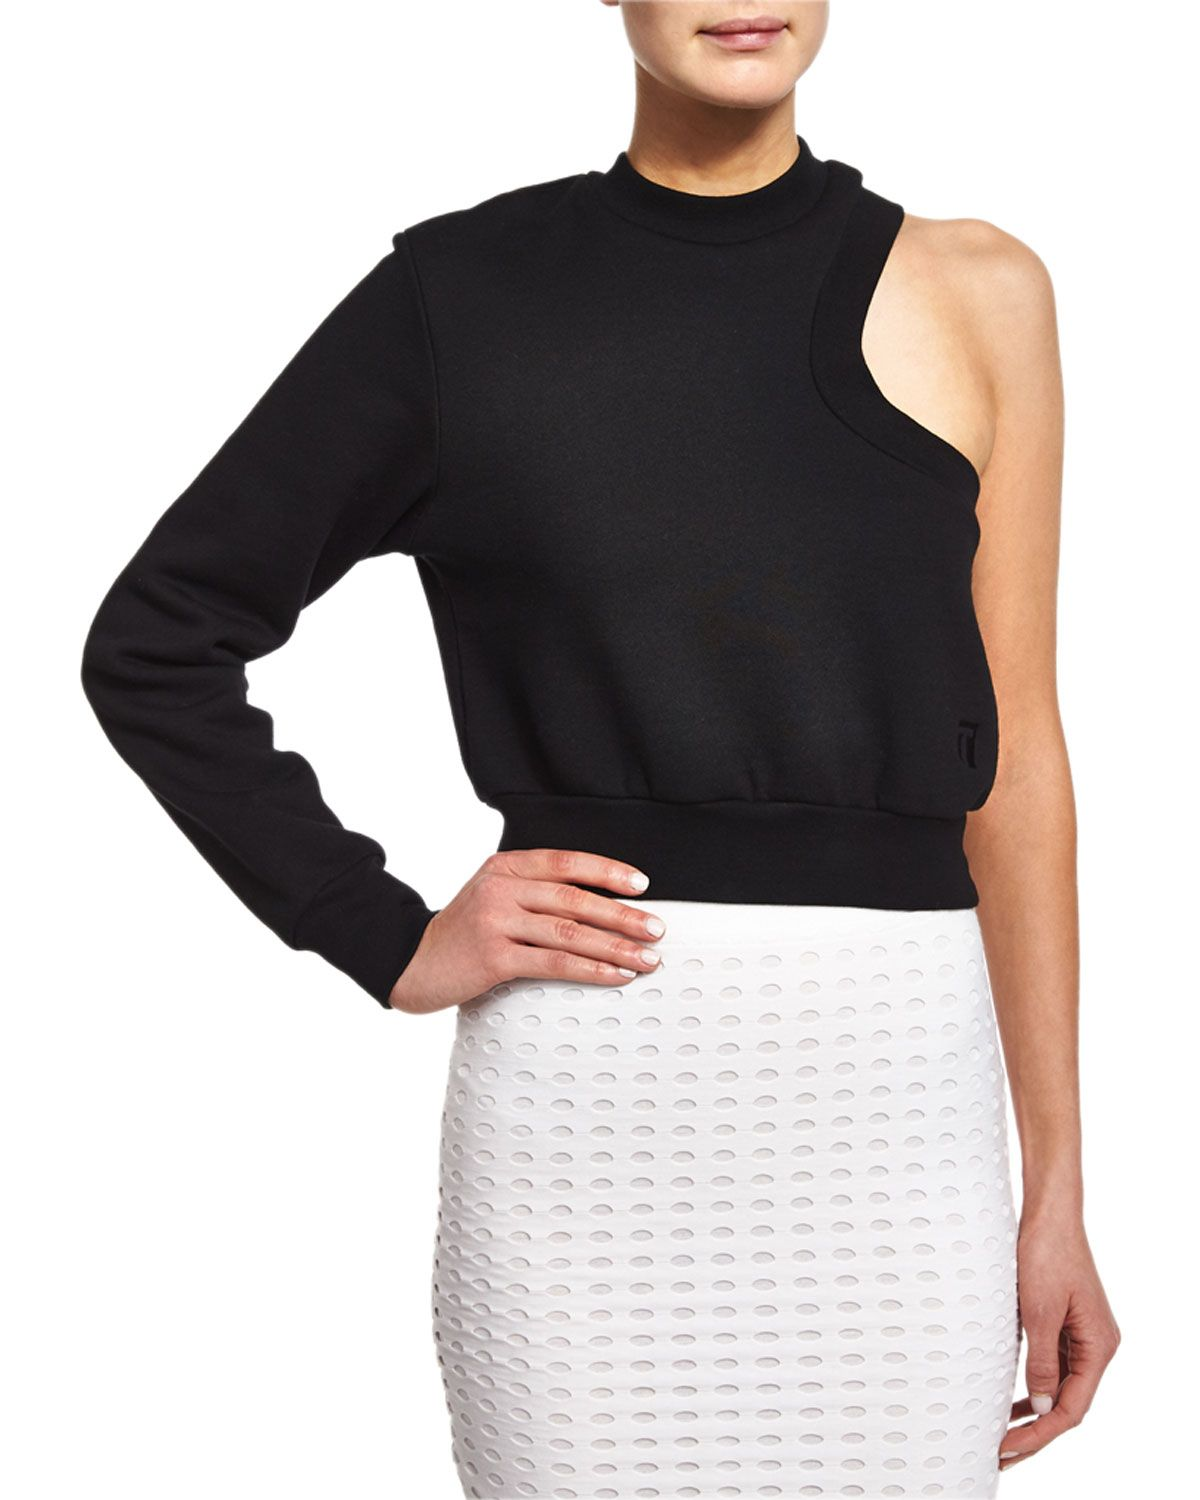 One-Sleeve Cropped Sweatshirt, Black, Size: X-SMALL - T by Alexander Wang